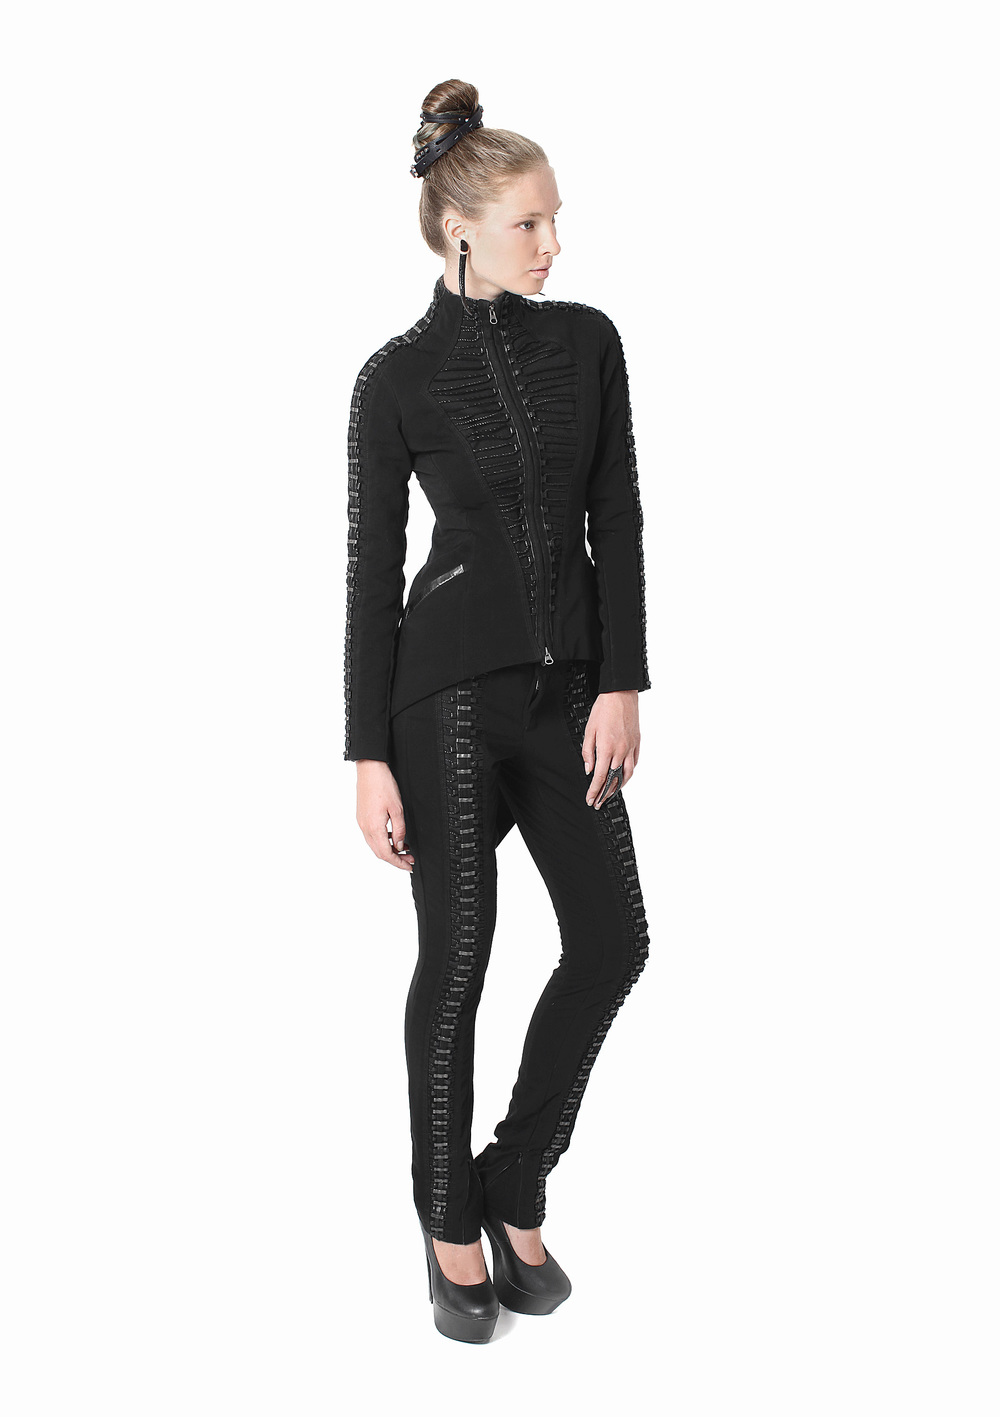 Stagger Laced Jacket.jpg